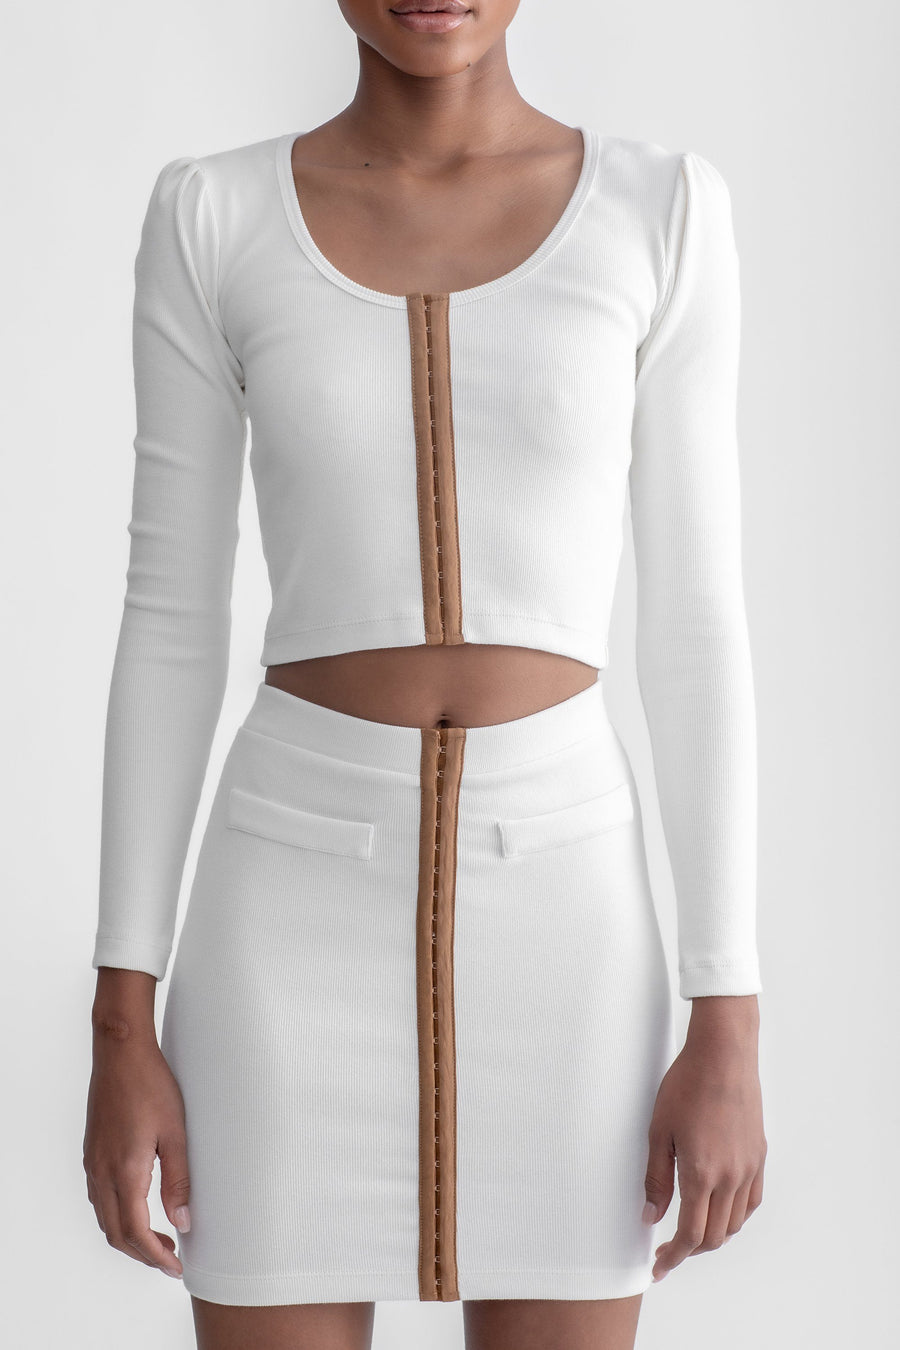 Hook & Eye Long Sleeve Top White